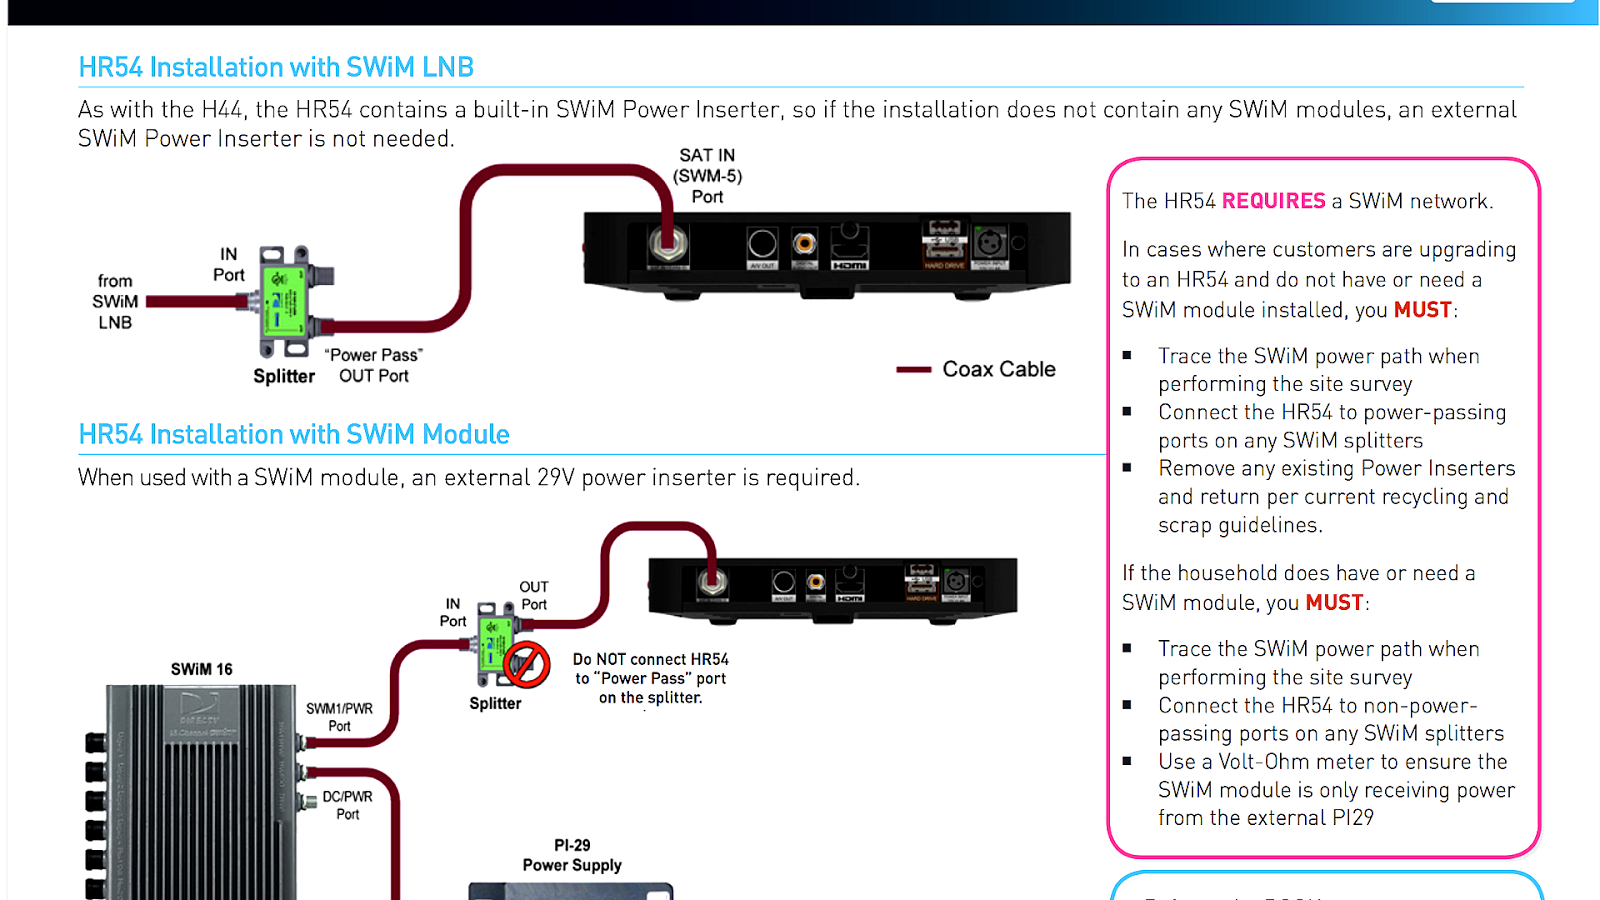 Directv Swm Lnb Wiring Diagram from static-cdn.imageservice.cloud